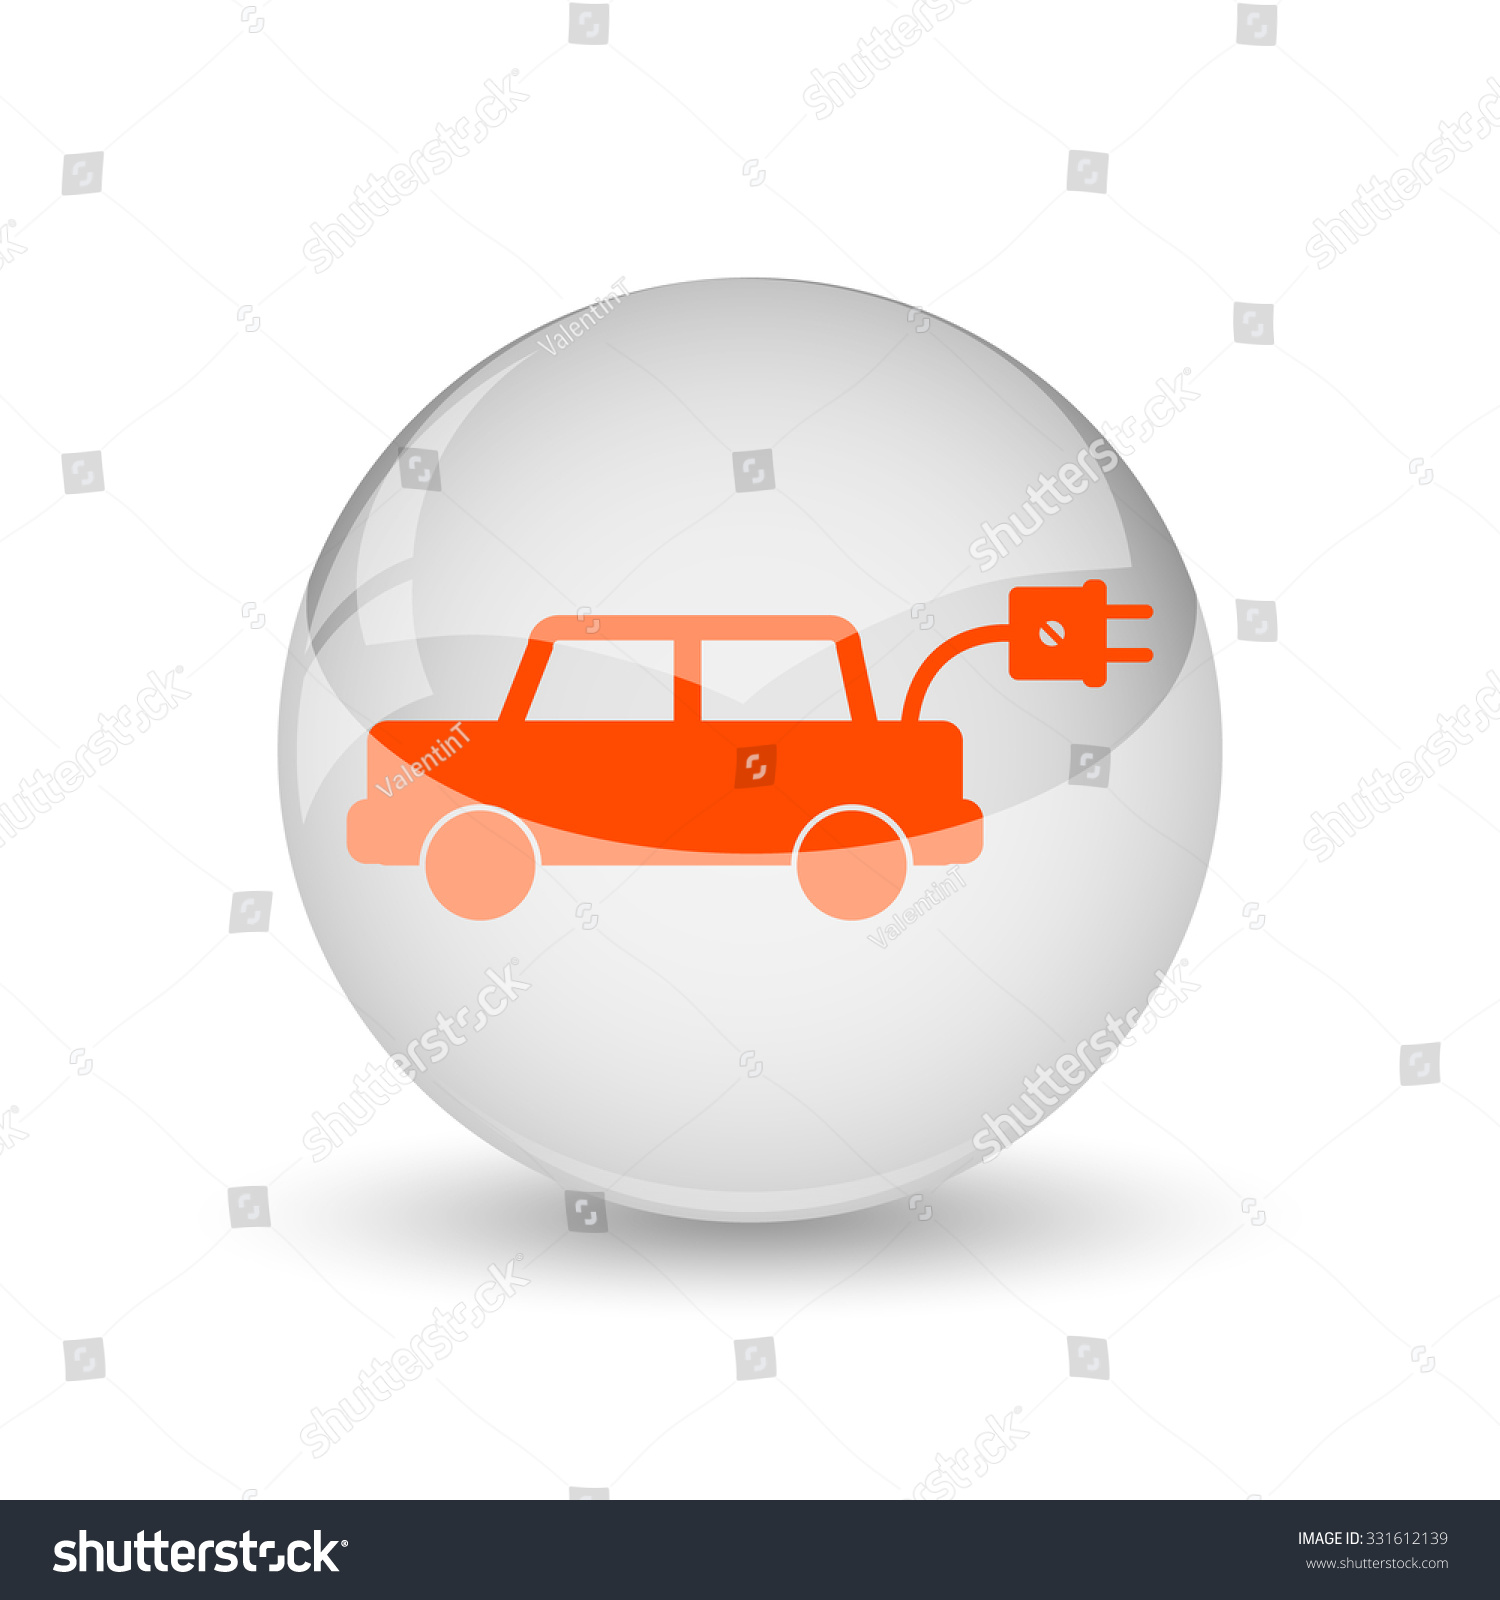 electric car icon internet button on white background stock photo 331612139 shutterstock. Black Bedroom Furniture Sets. Home Design Ideas